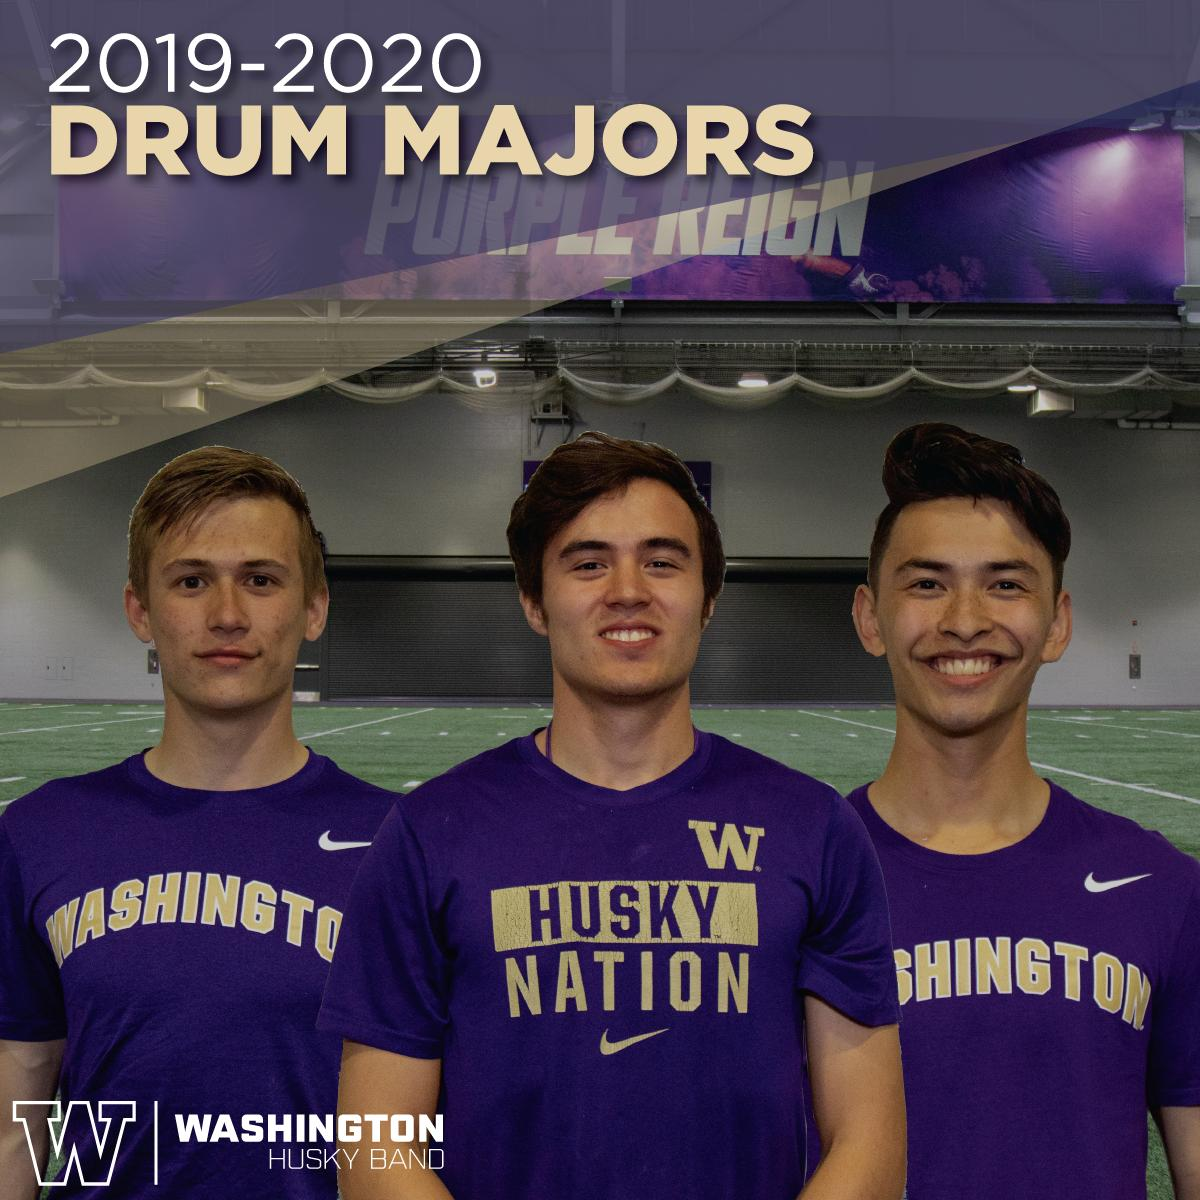 38f78ea9 We are pleased to announce our 2019-2020 Drum Majors. They are Alexander  Aanesen from South Kitsap High School, Denali Cornwell from Ballard High  School and ...